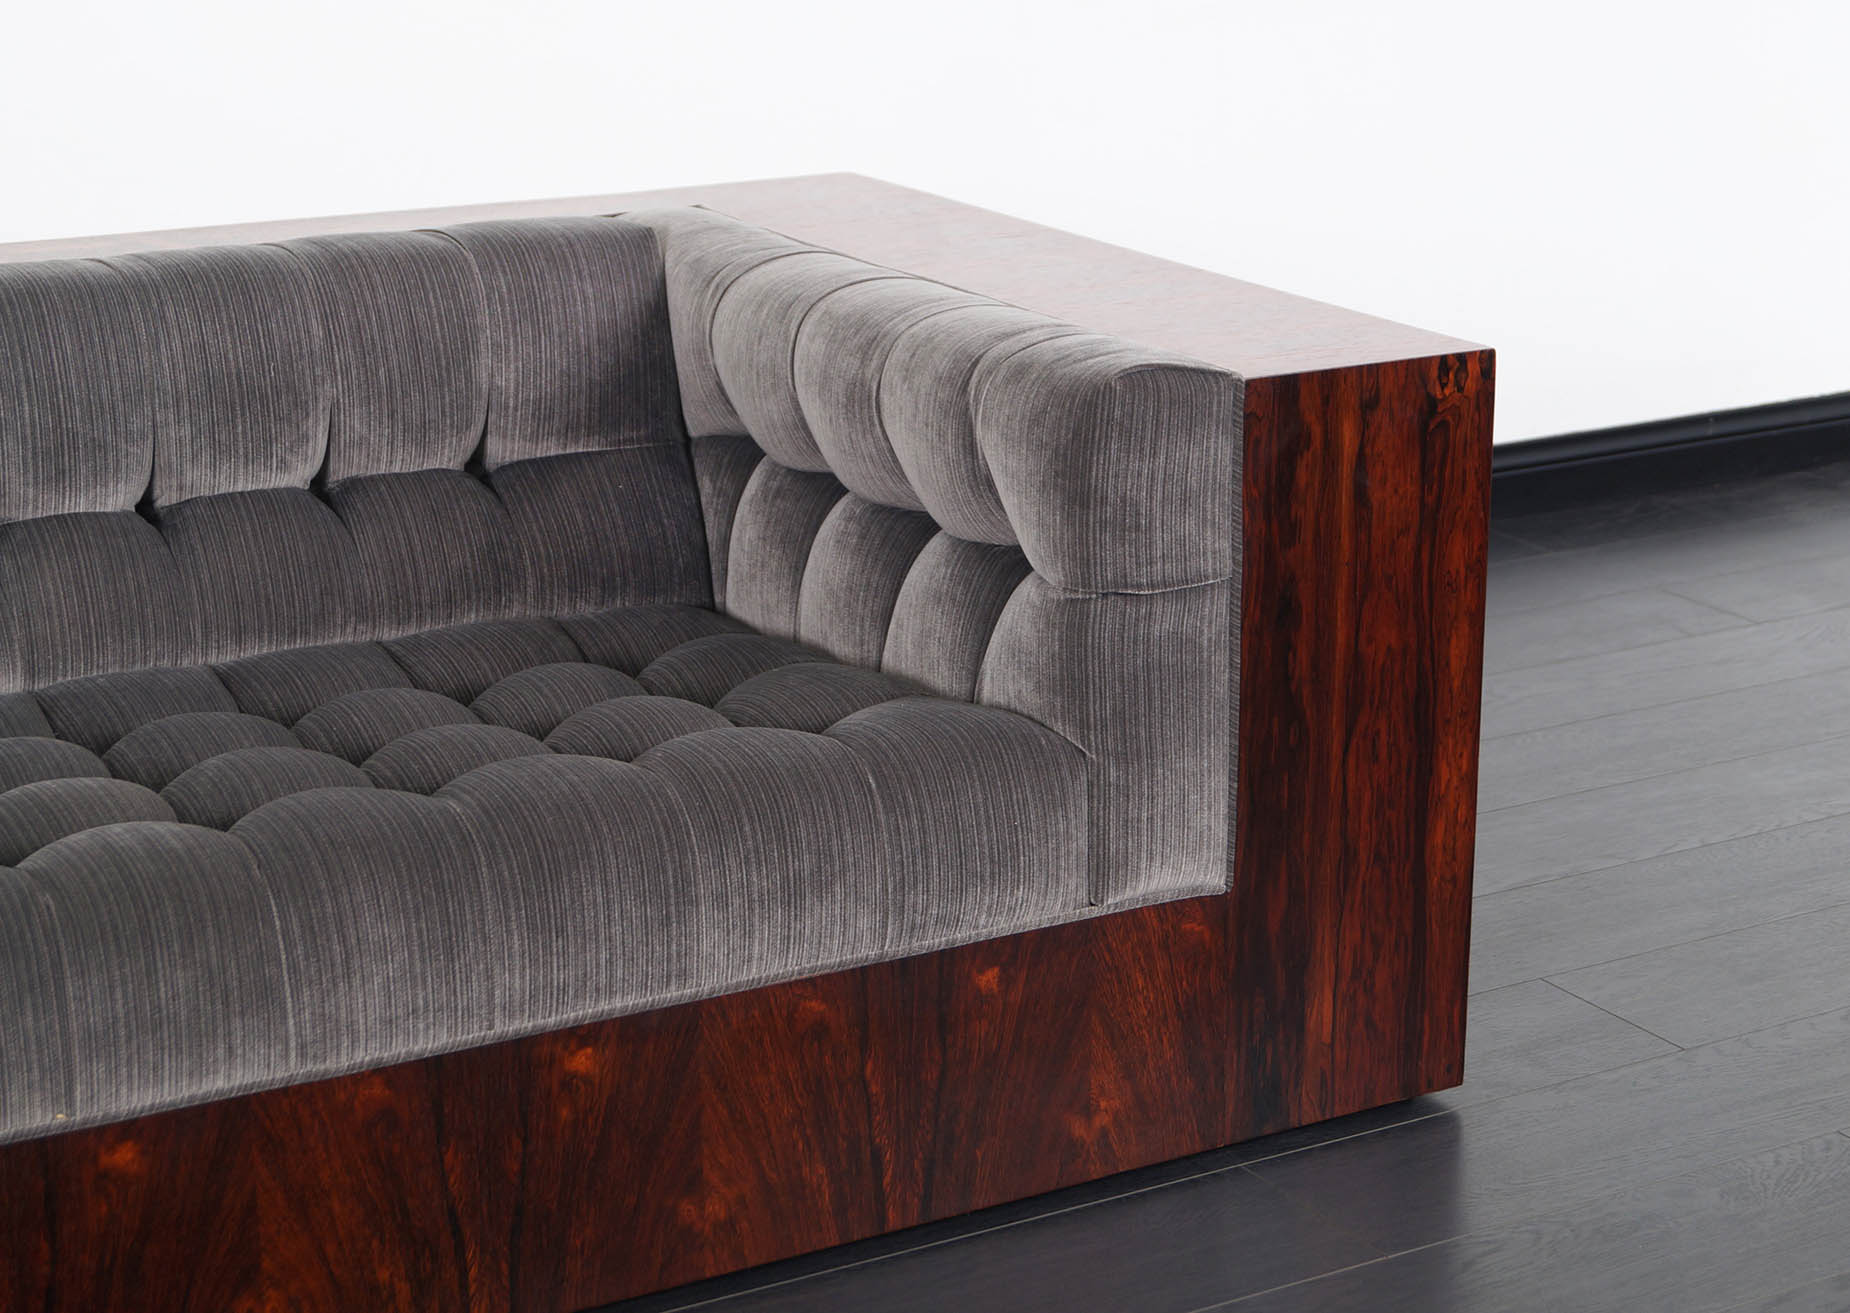 Thayer Cogging Rosewood Sofa by Milo Baughman